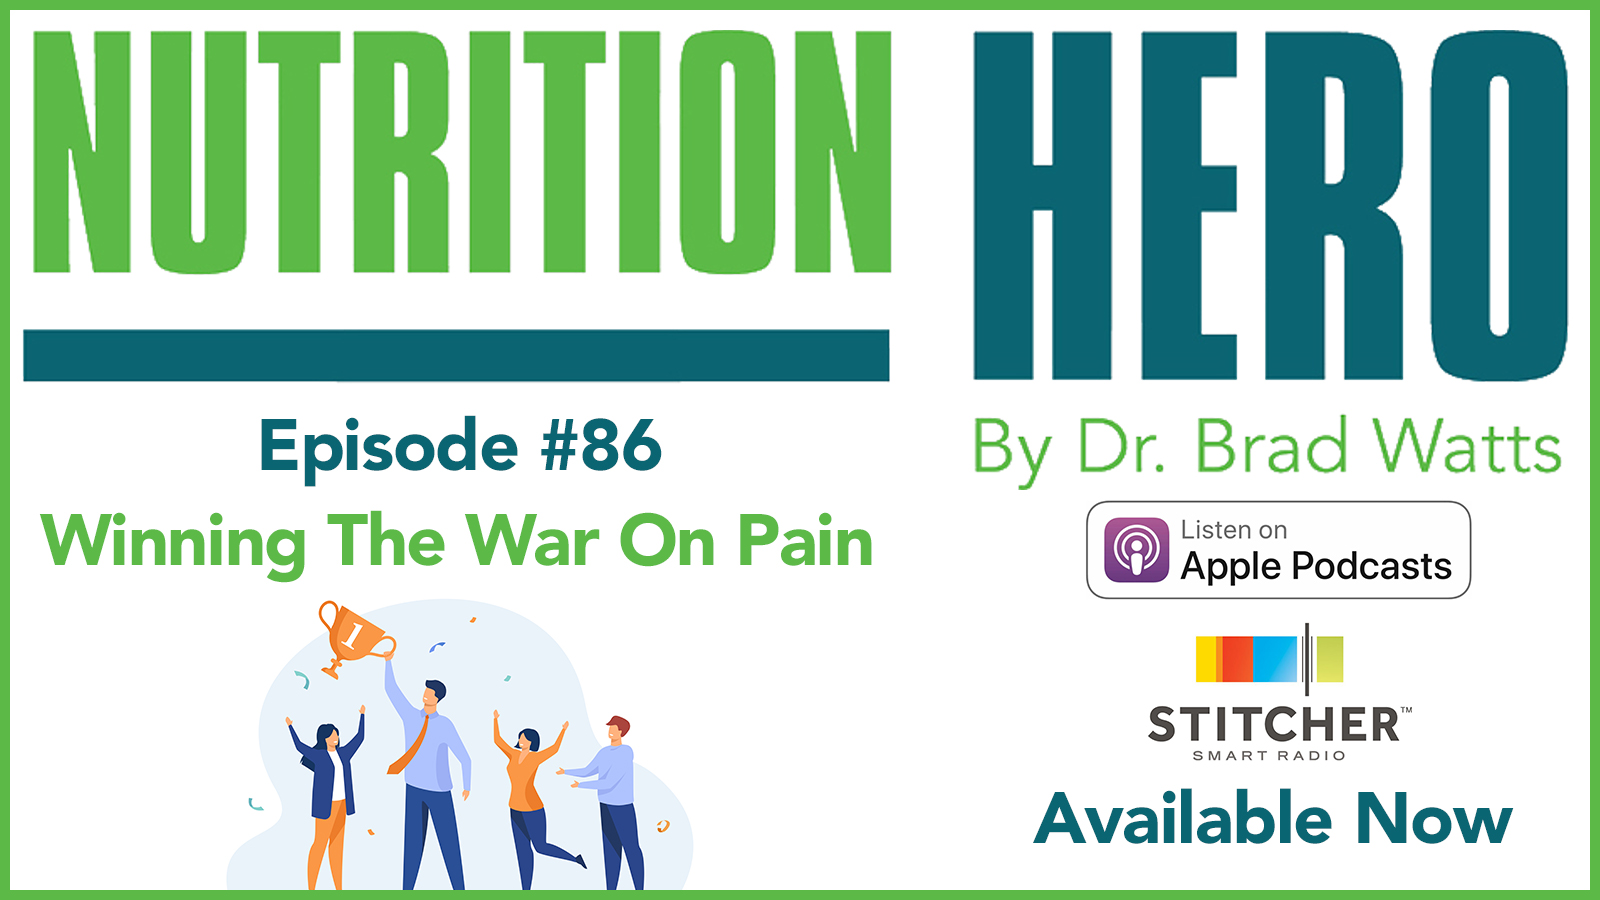 Episode #86 - Winning The War On Pain show art